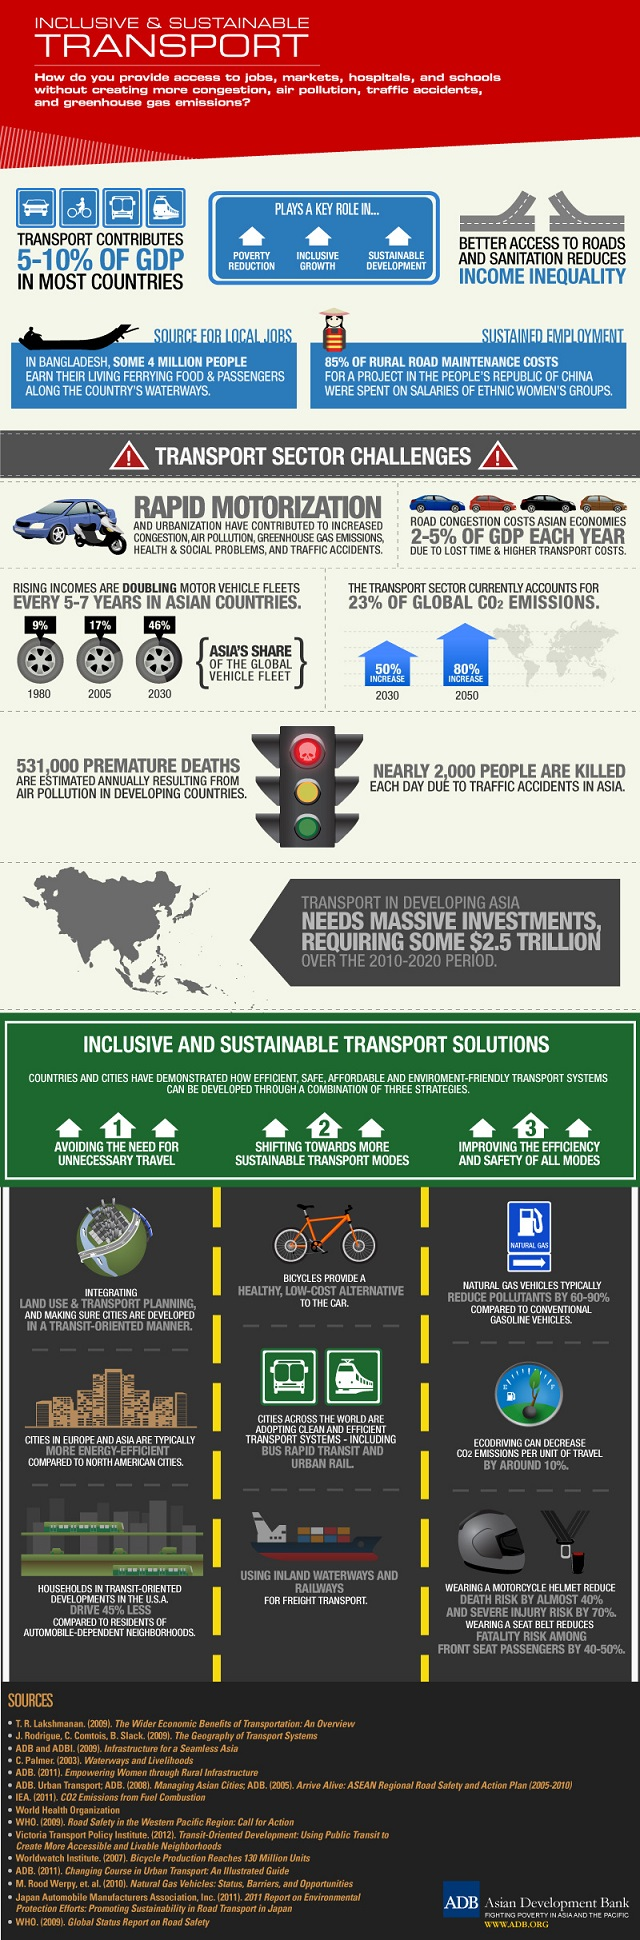 Inclusive and sustainable transport. Infographic by Asian Development Bank.